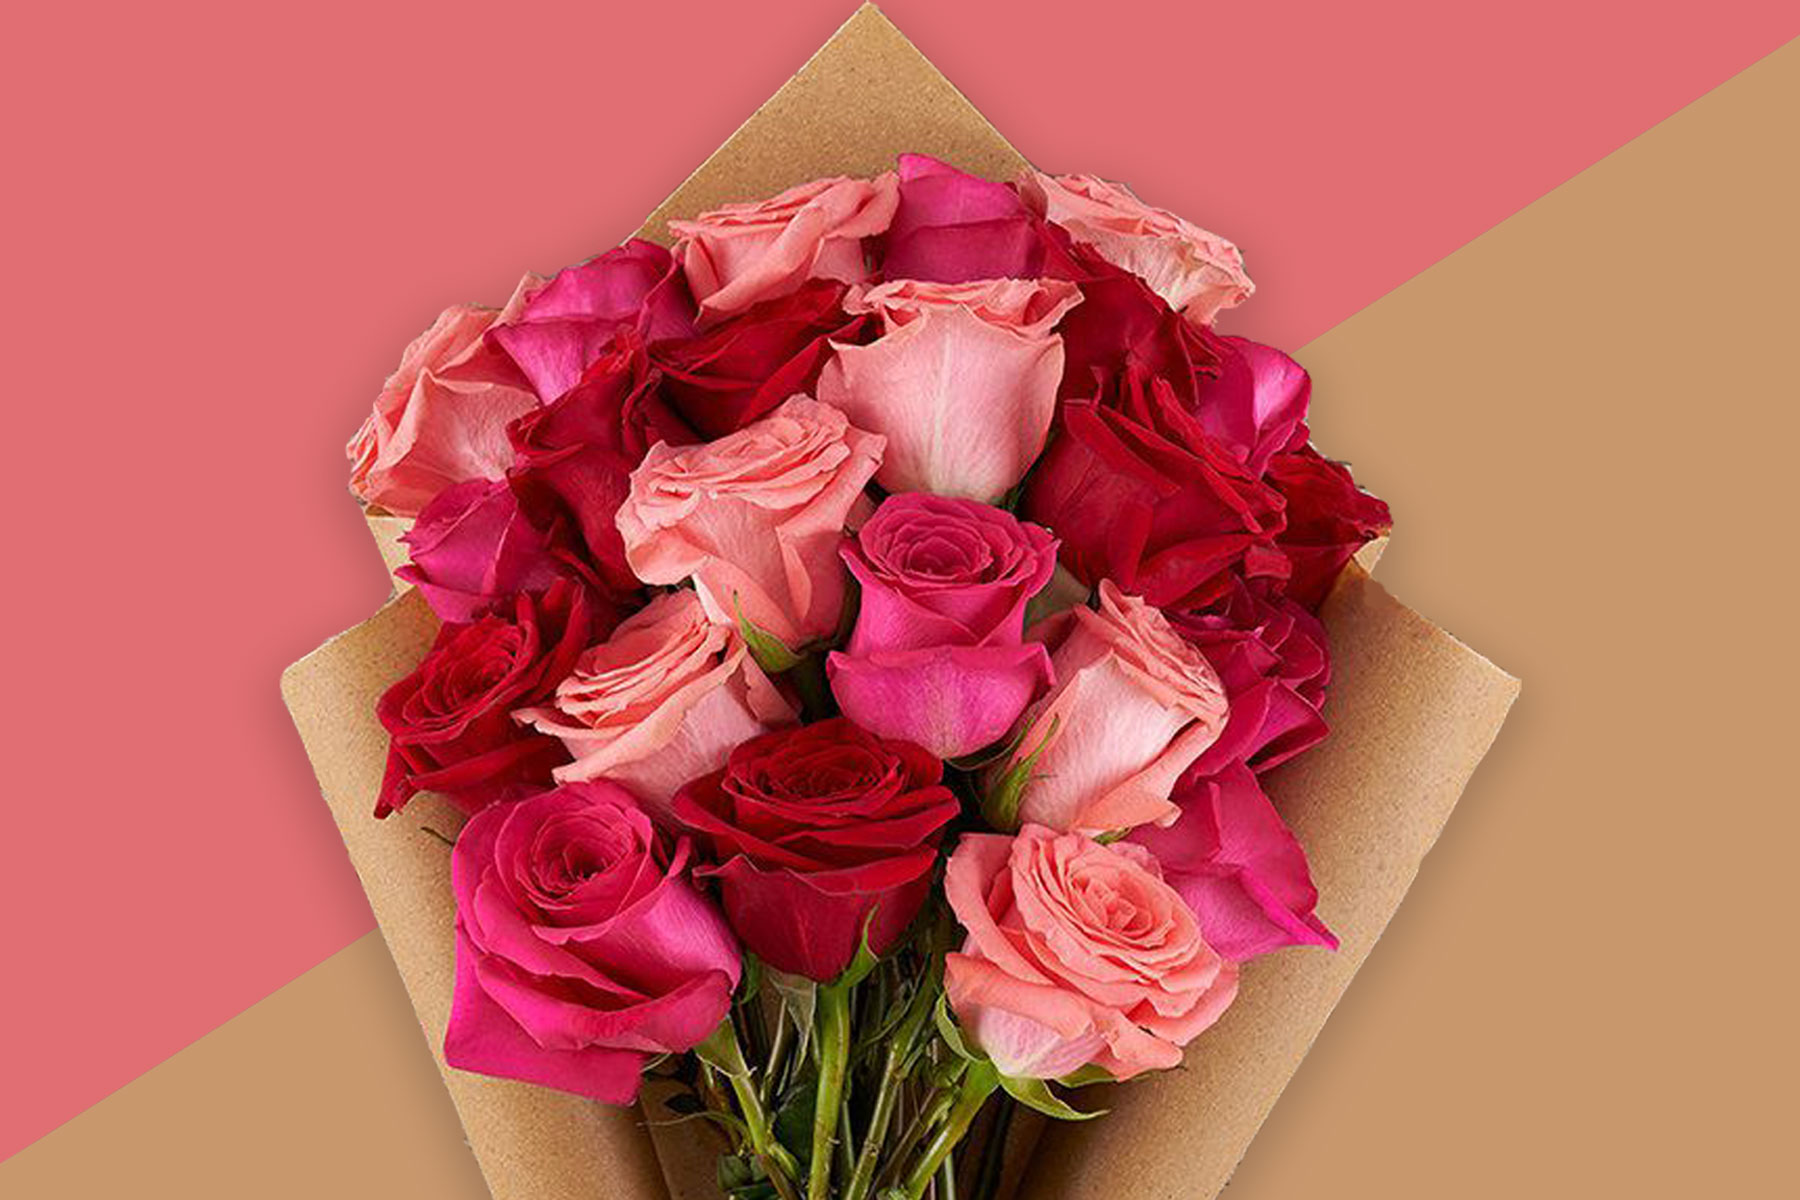 Bouquet of pink and red roses